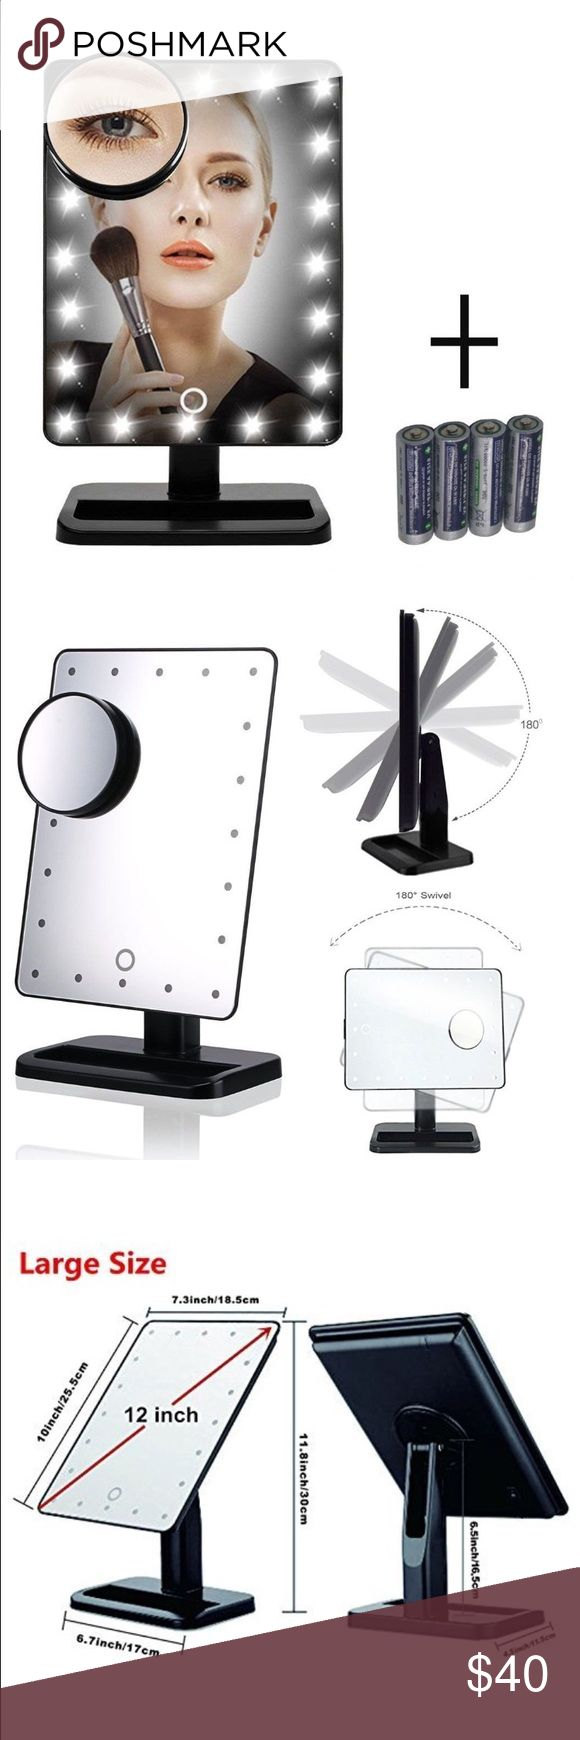 Glamor Rotate LED Makeup Mirror Built-in 20pcs adjustable LED lighted allow you to do your make-up in the dark or poorly lit areas. Batteries Included! With long service life. 4 AAA batteries included  10X Magnification Spot Mirror: Make sure every detail of your hair and makeup are in place, 180 Free Rotation Movable: Can fix at any position to give you the perfect viewing angle.  ON/OFF Switch: Controlled by touch sensor switch on the mirror, turning LED lights on/off whenever you want…